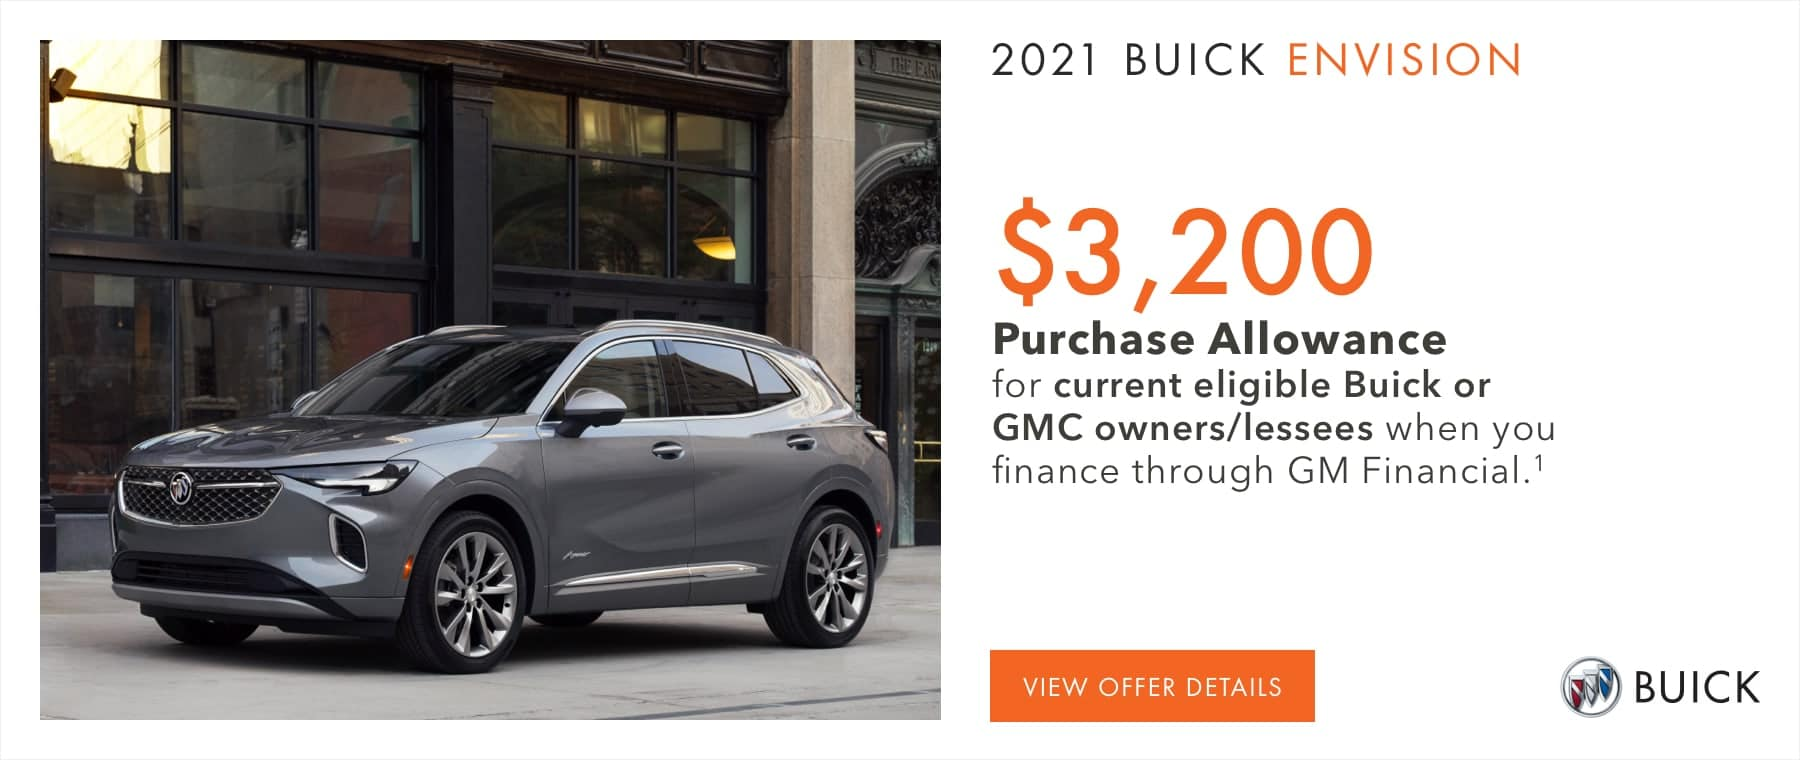 $3,200 Purchase Allowance for current eligible Buick or GMC owners/lessees when you finance through GM Financial.1